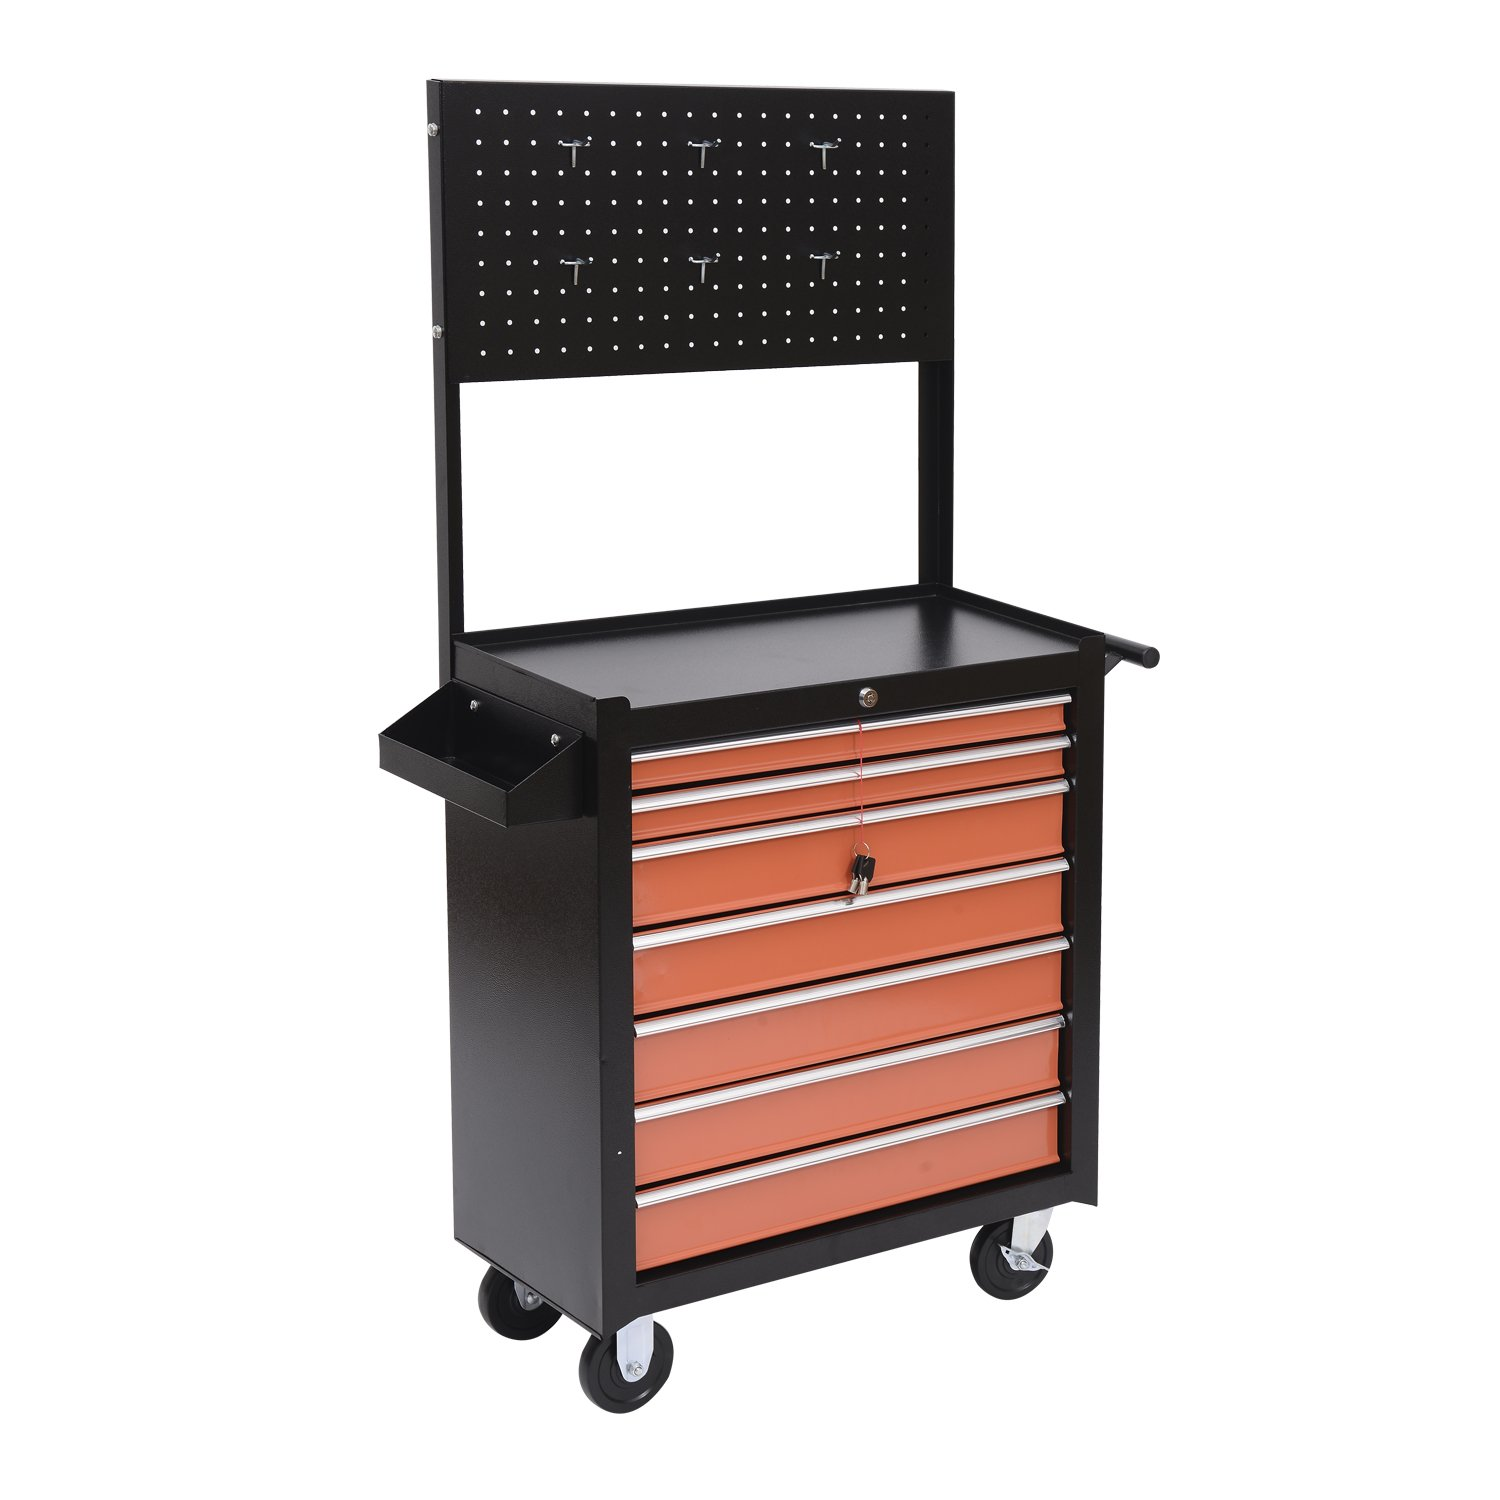 HomCom Rolling Shop Tool Cabinet with 7 Locking Drawers and Steel Pegboard Tool Storage - Black / Orange